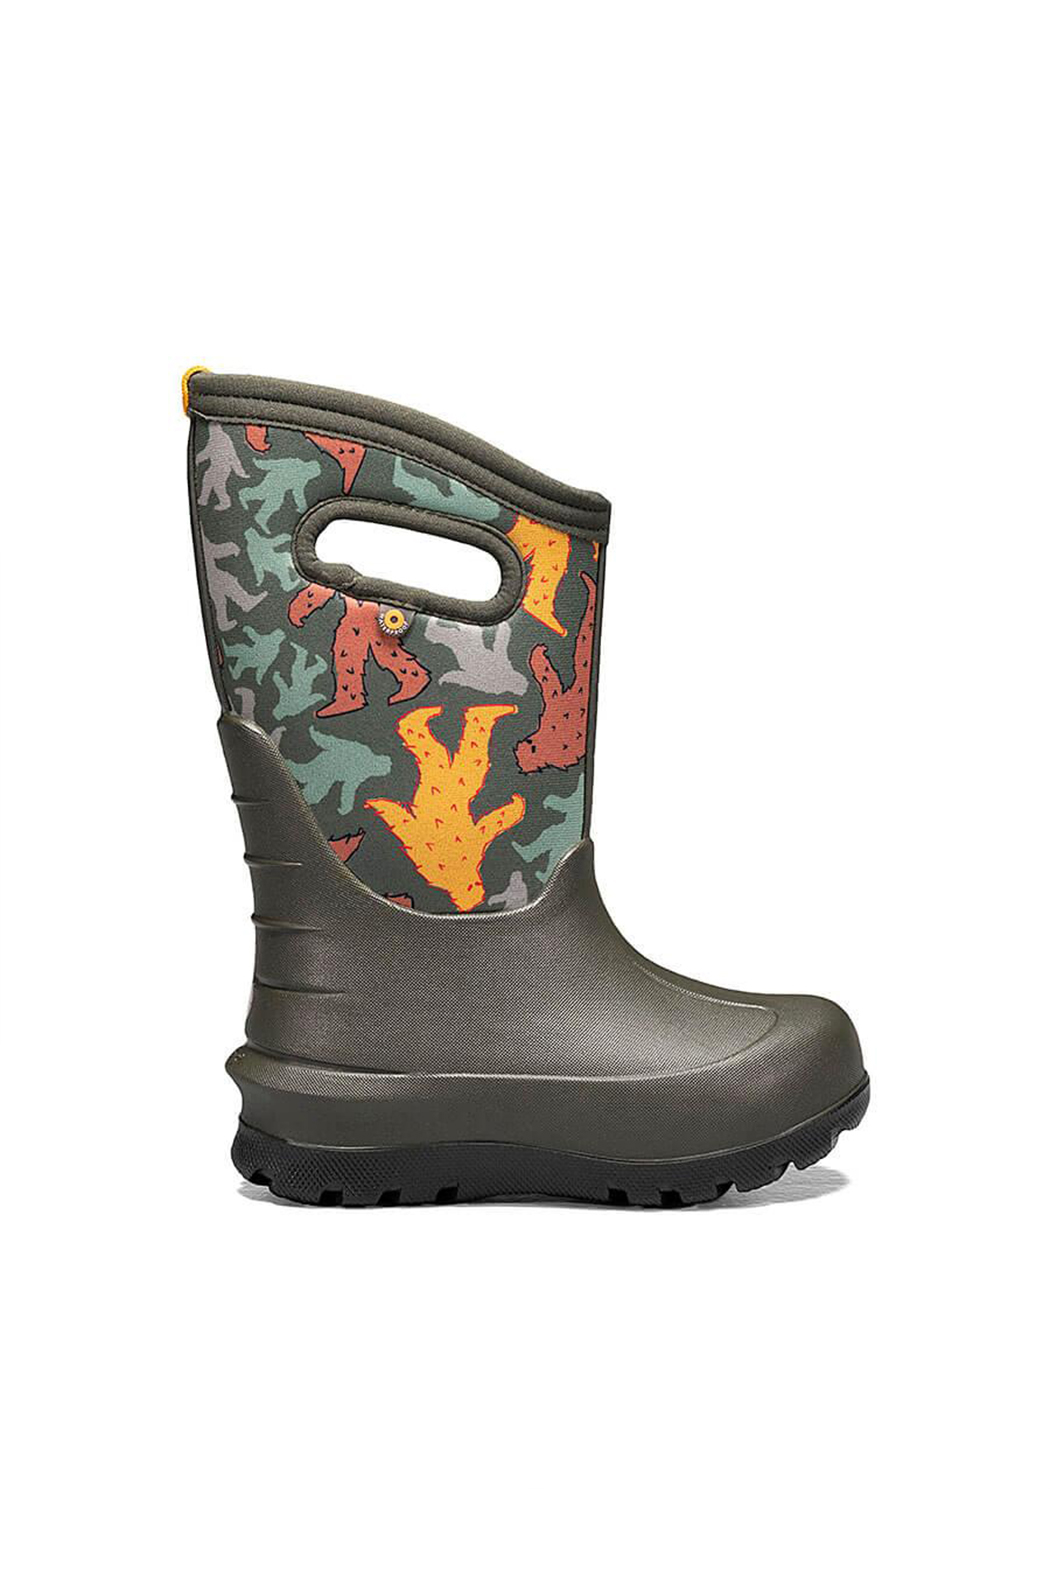 bogs  Neo-Classic Waterproof Winter Boot - Bigfoot - Front Cropped Image